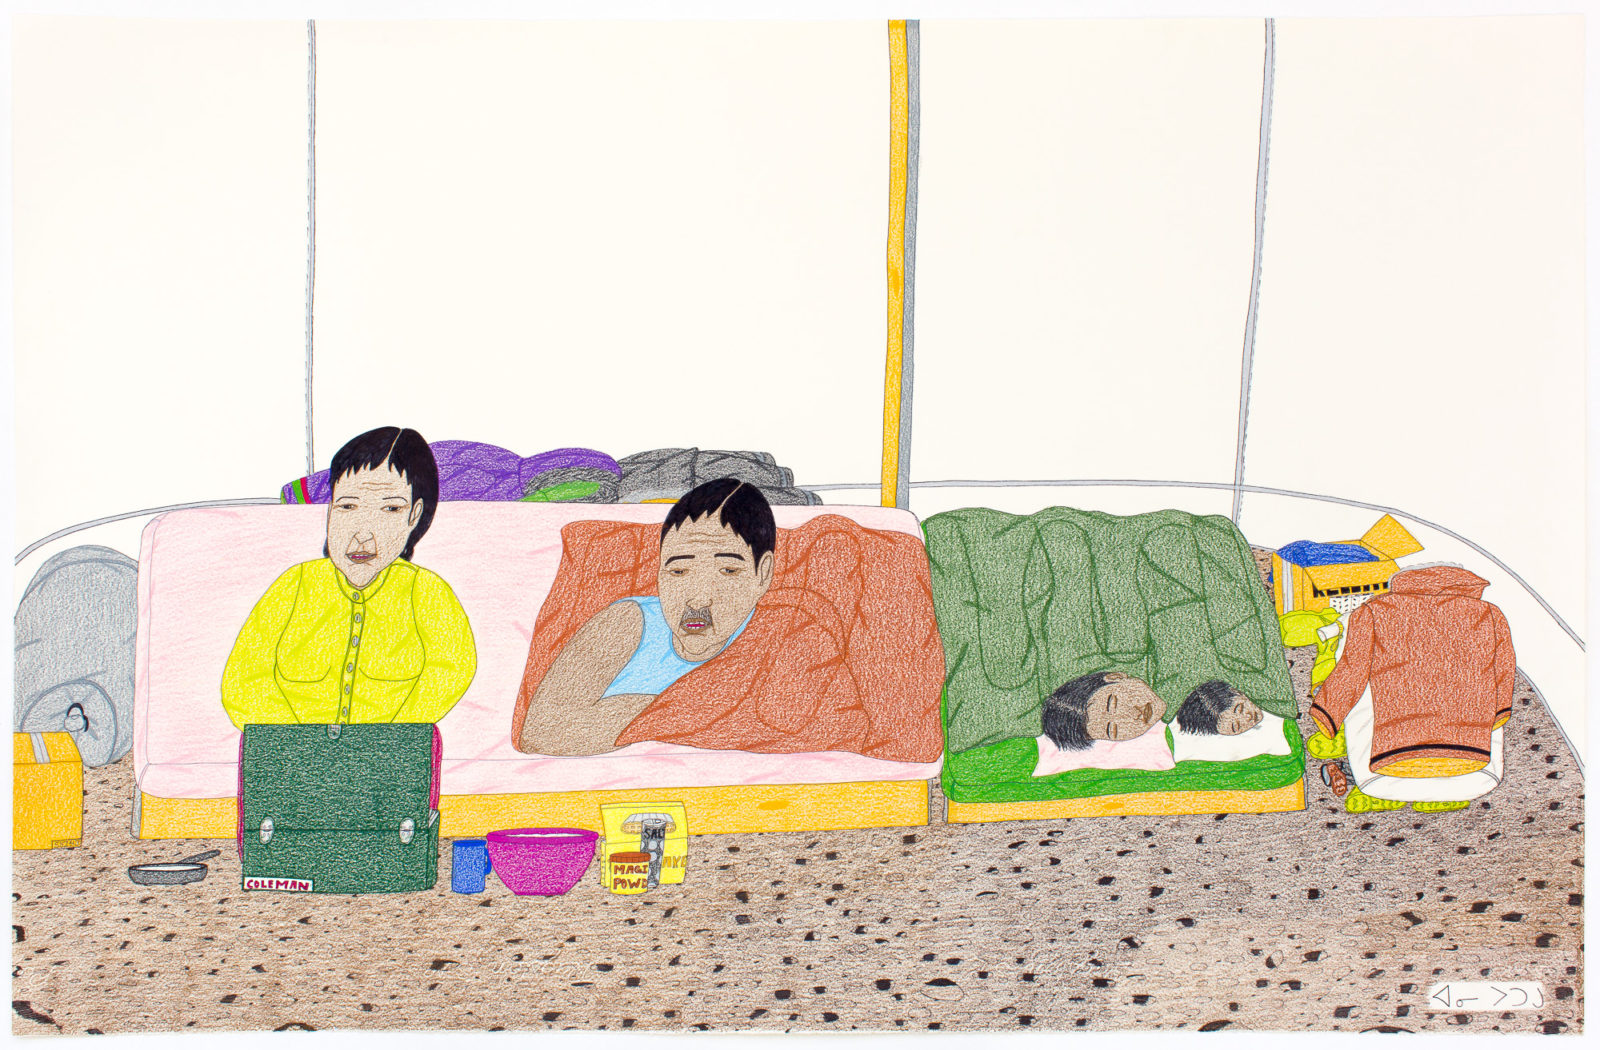 Annie Pootoogook - Family In Tent